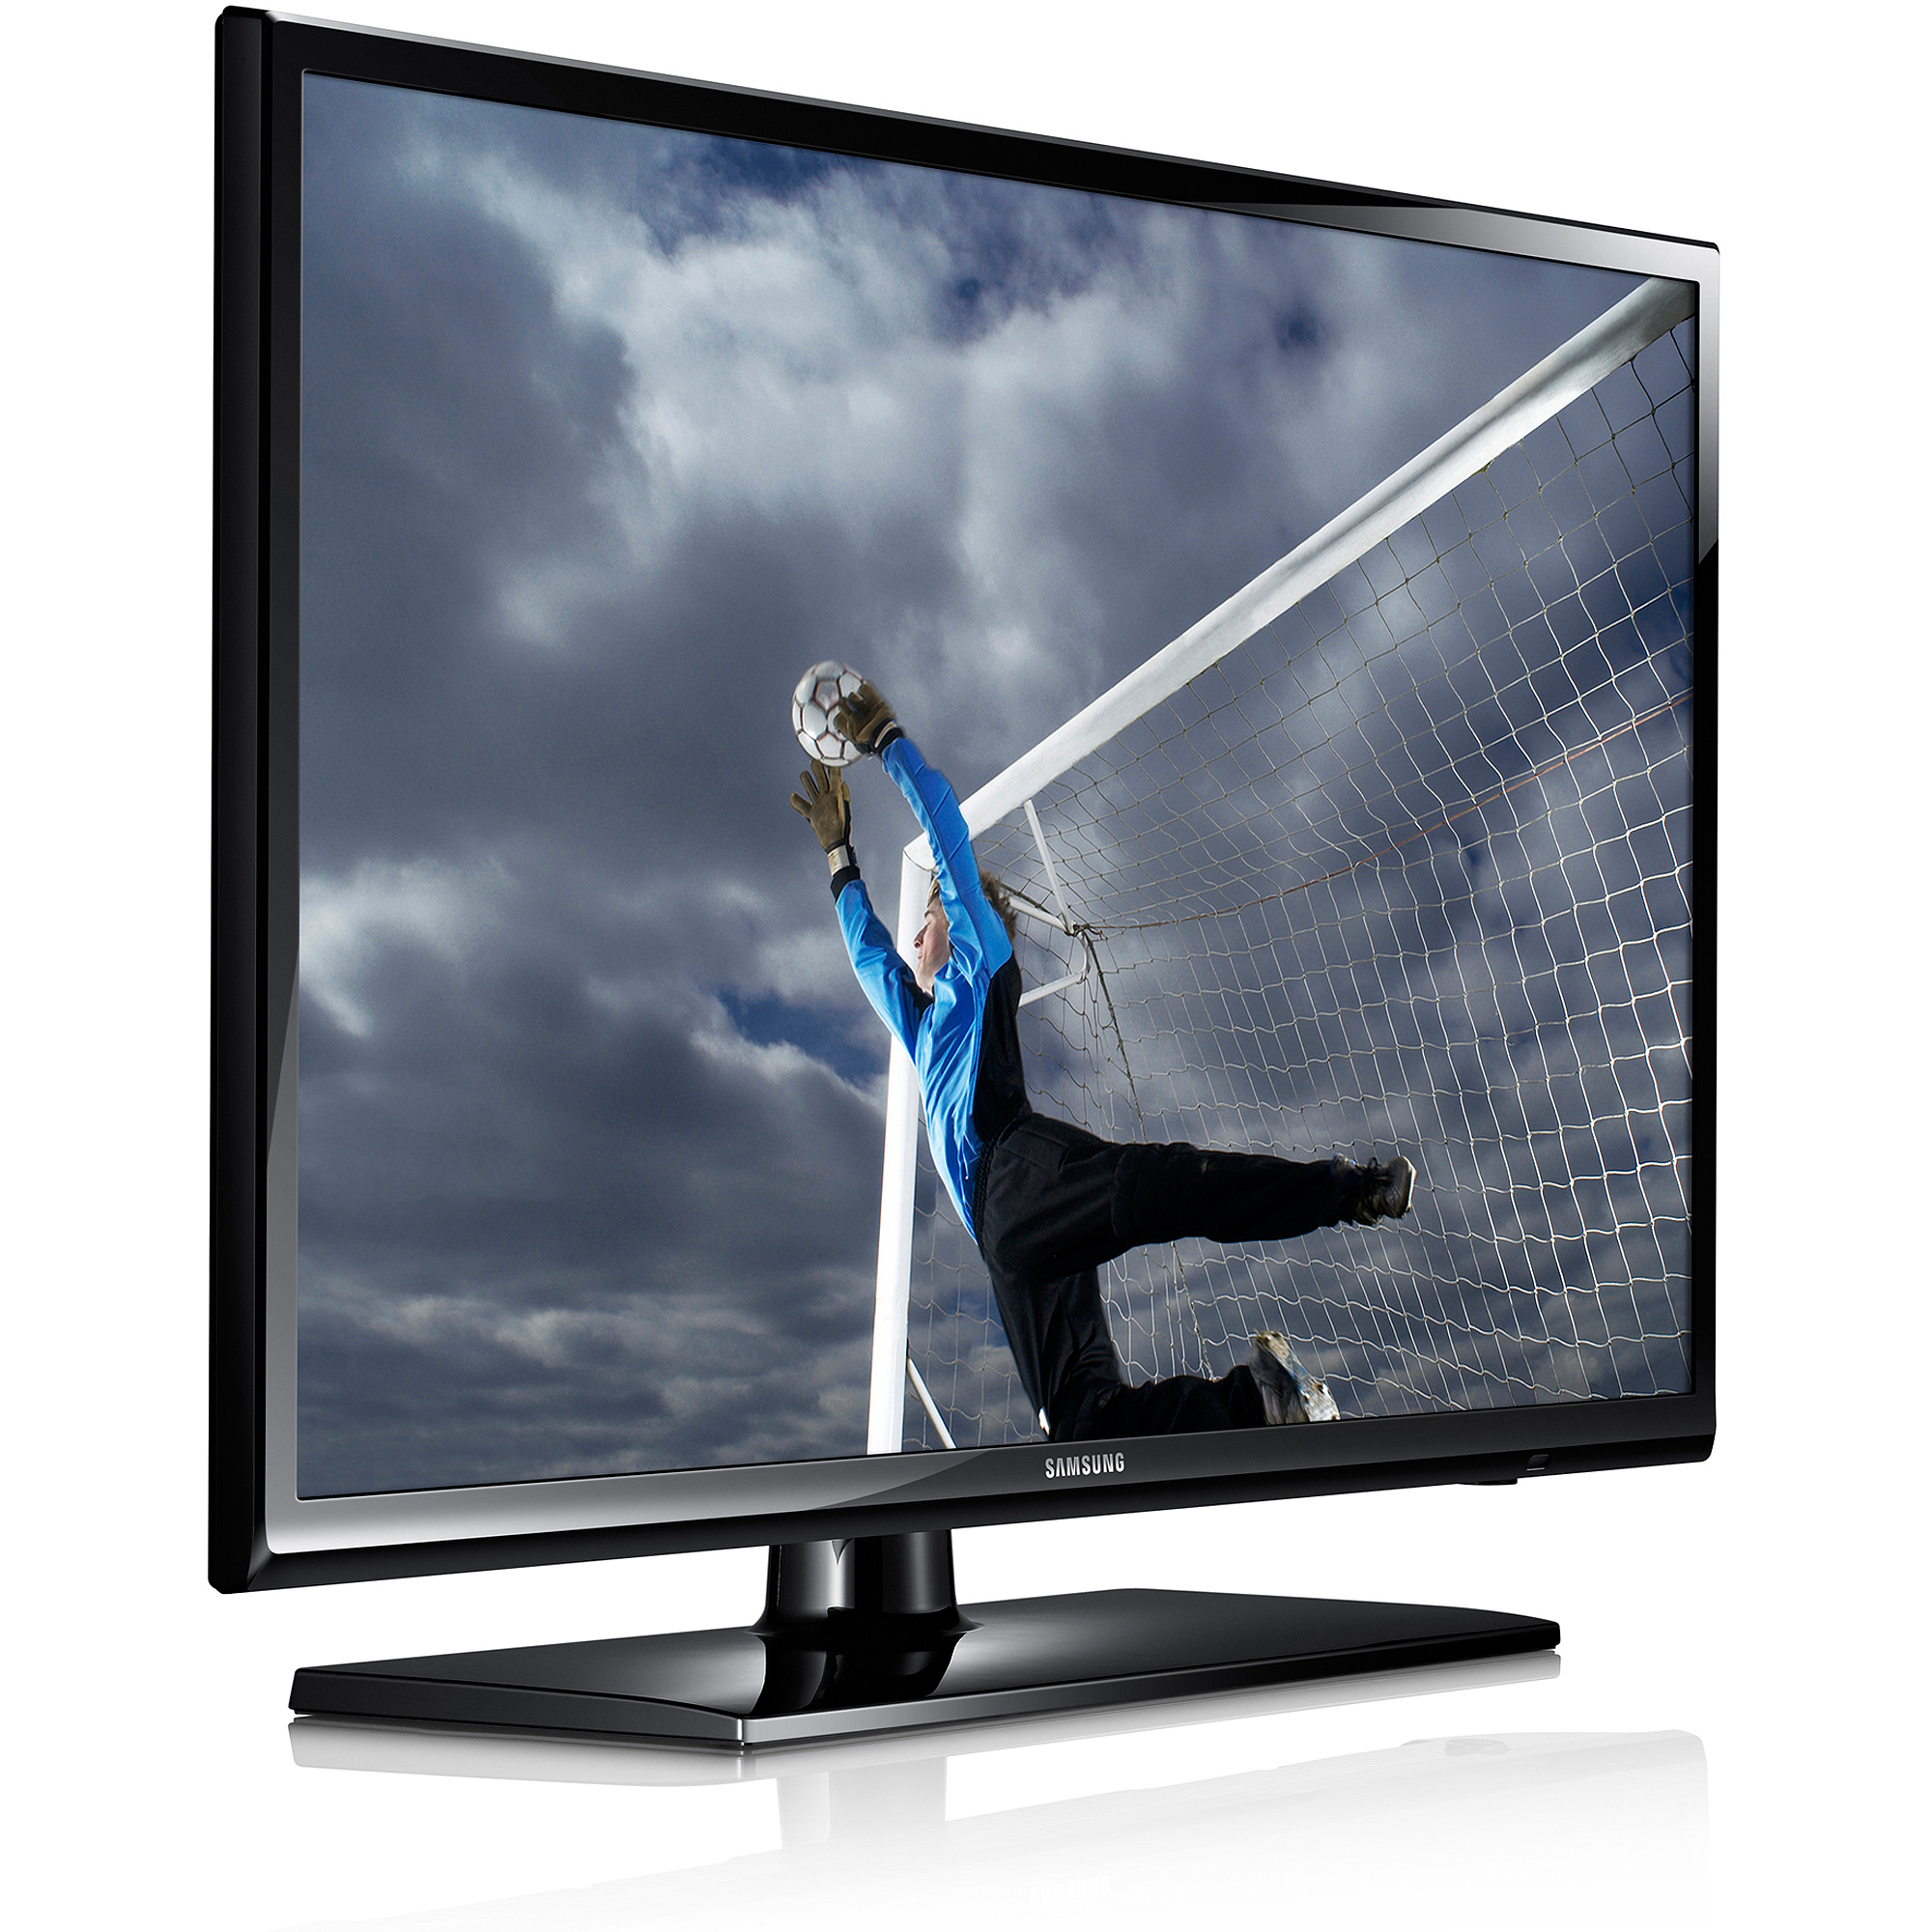 "Samsung   40"" 5000 Series - Full HD LED TV -1080p, 60Hz (Model#:UN40H5003)"